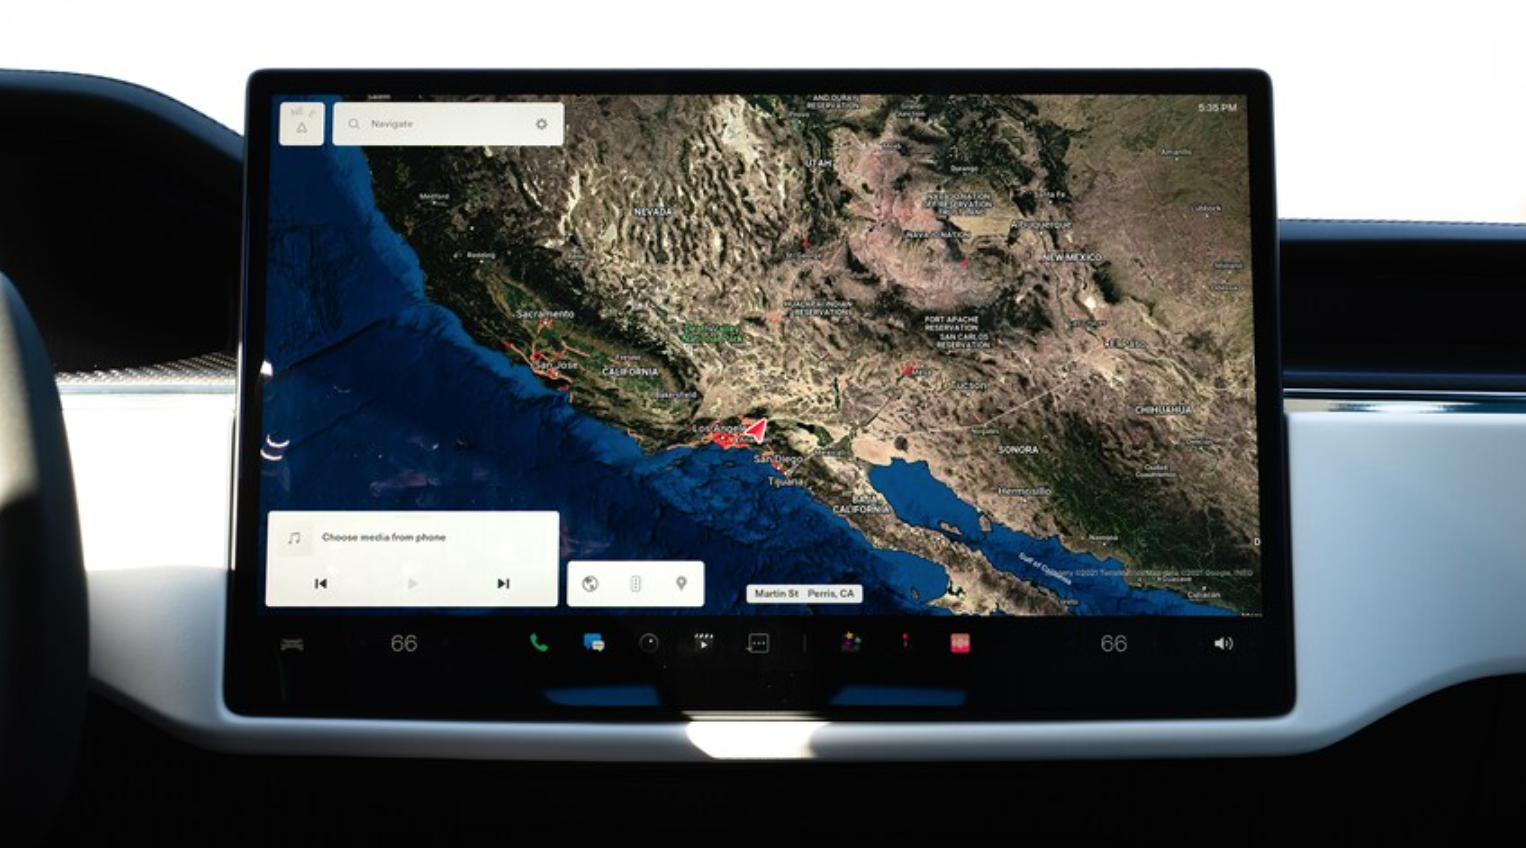 A map view with an arrow to indicate where a user is currently located